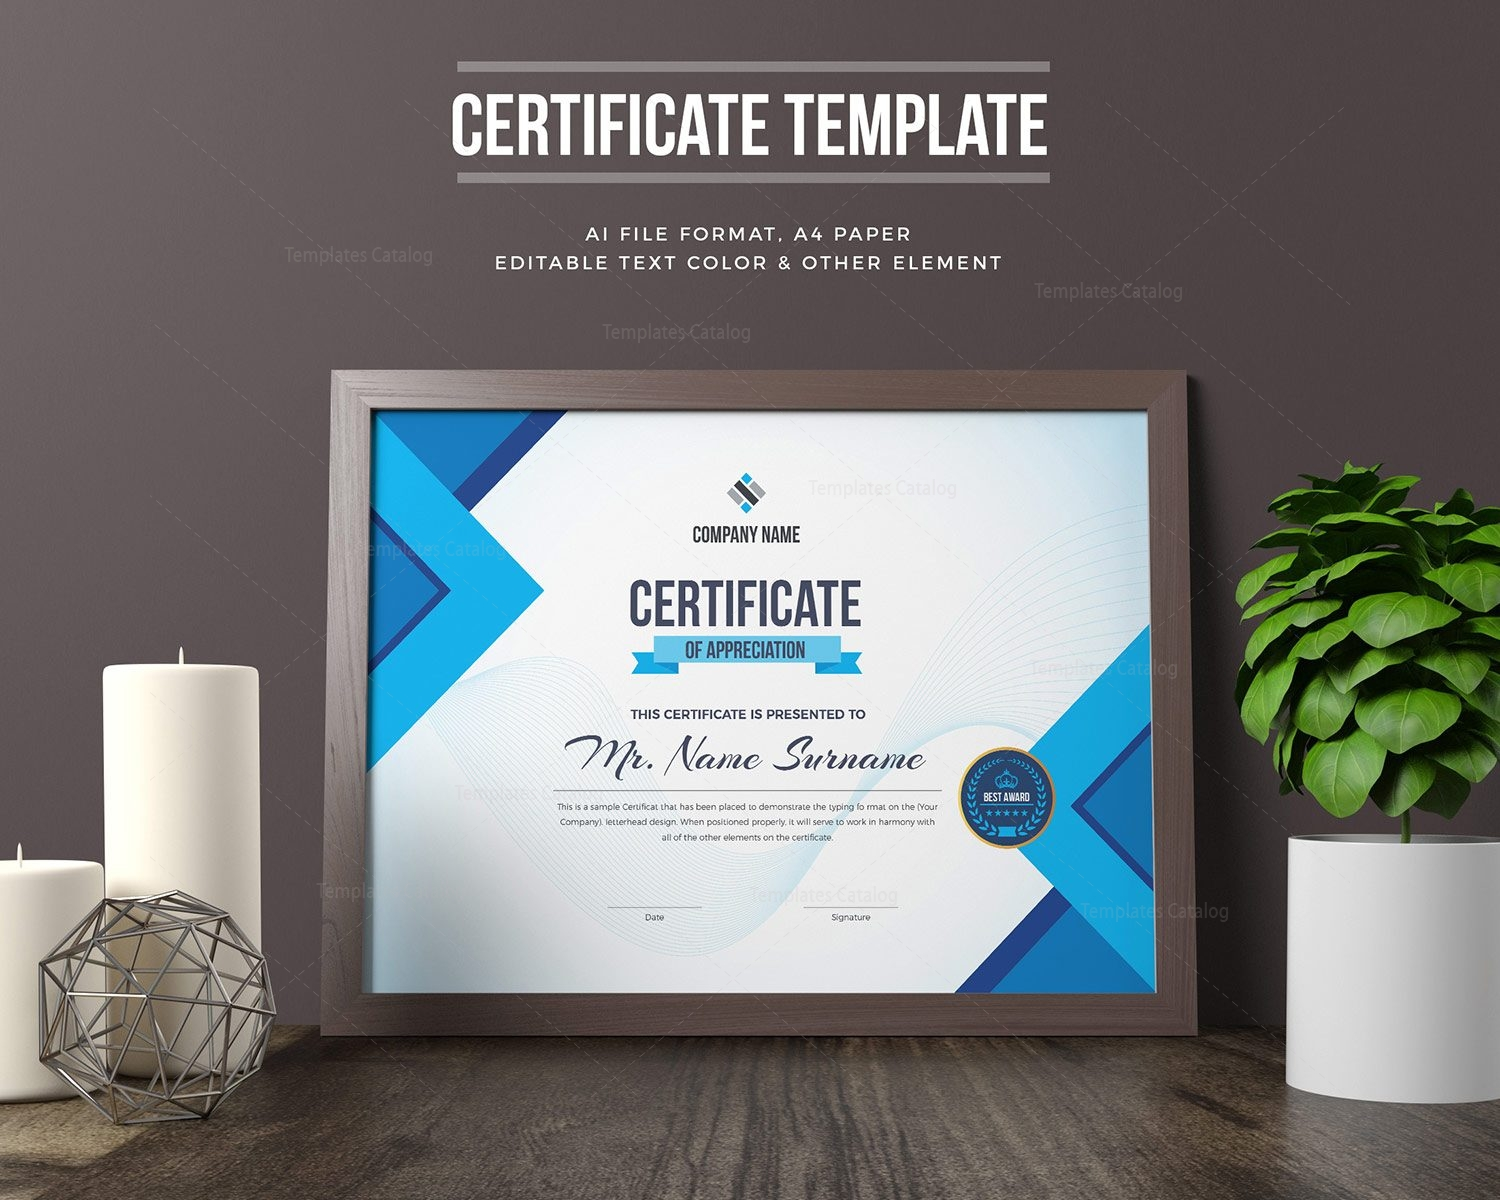 Editable certificate template 000329 template catalog for Editable certificate template